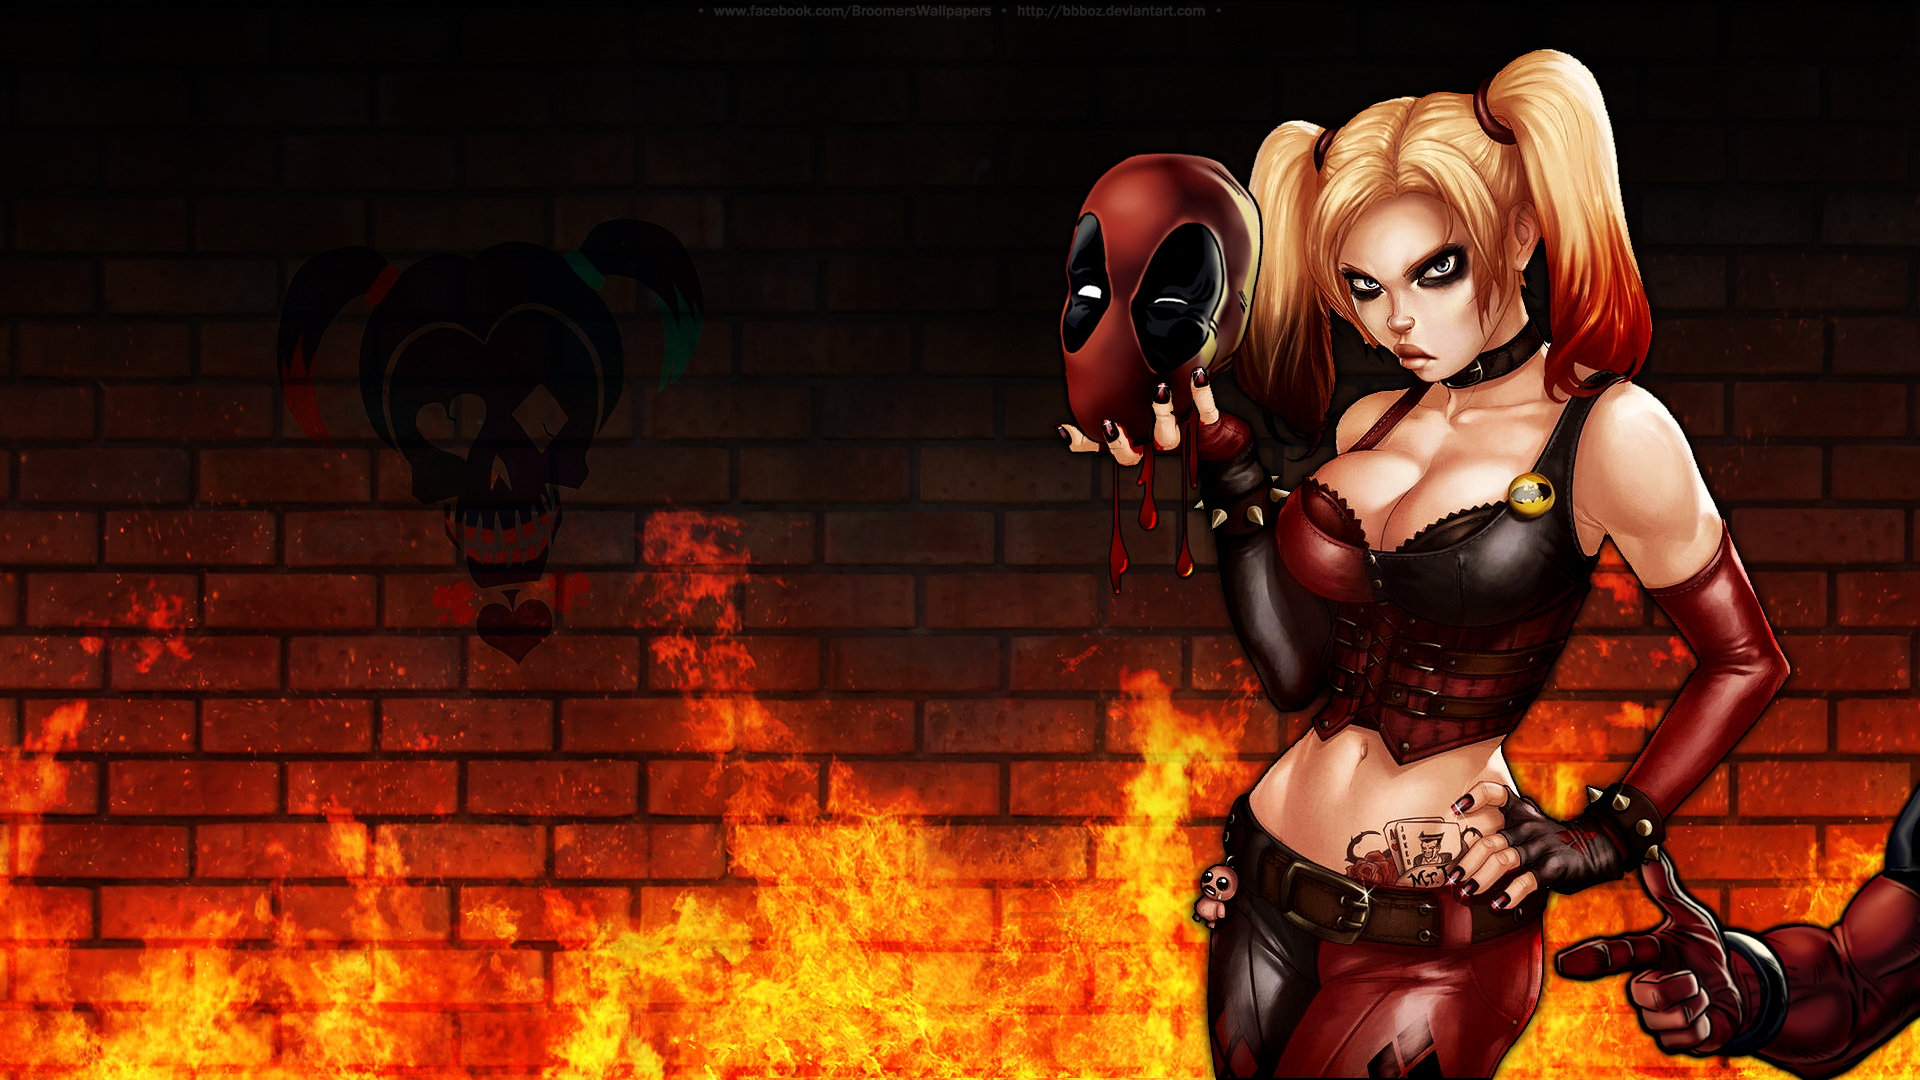 Harley Pool wallpaper by bbboz